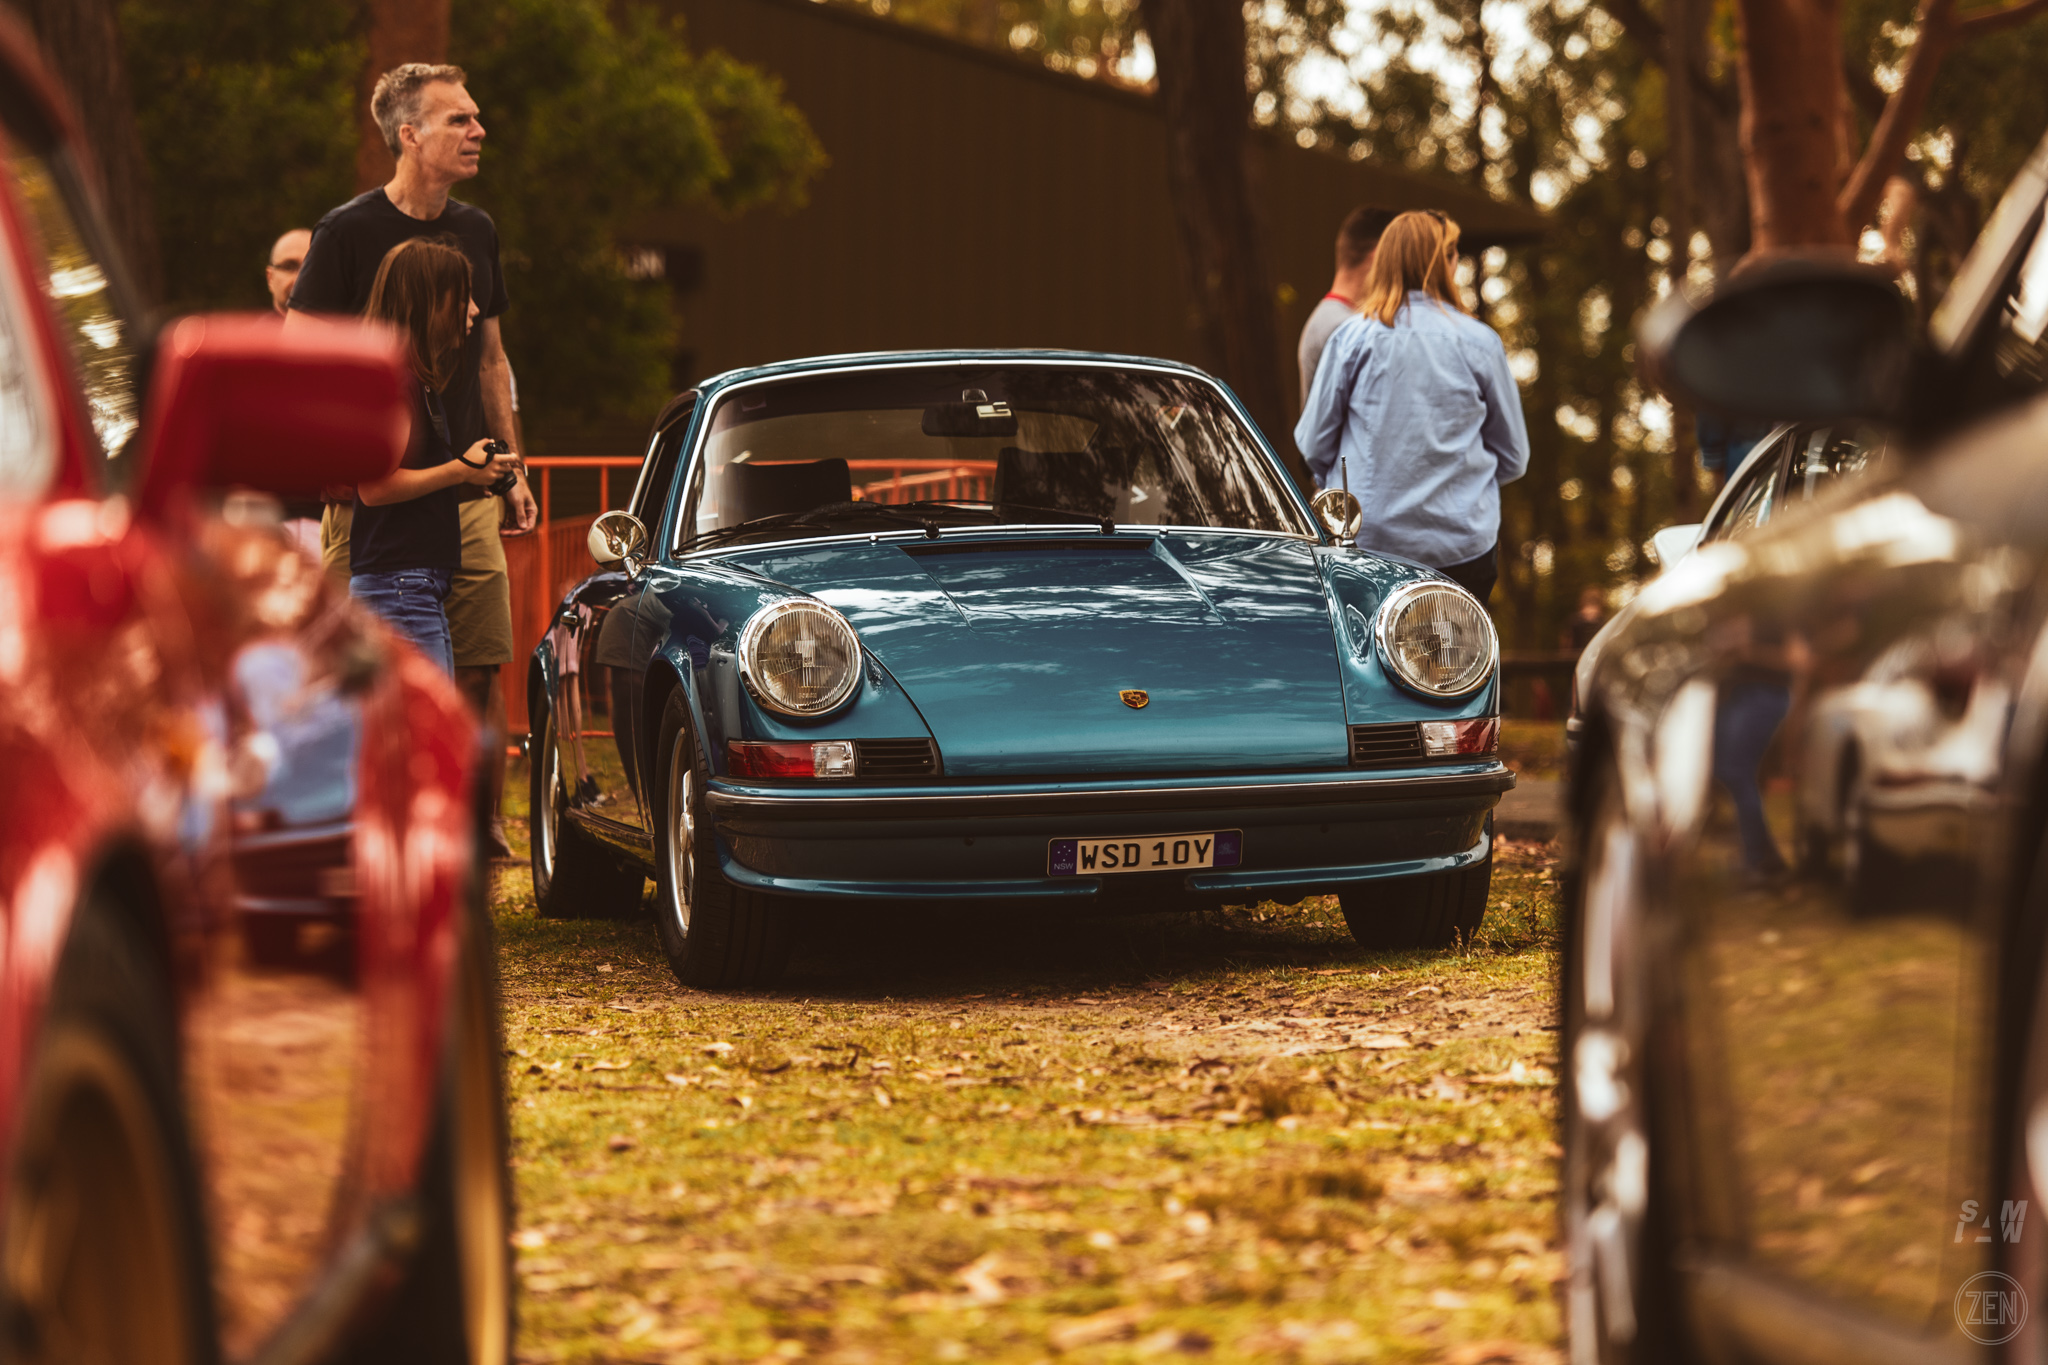 2019-12-08 - Porsches & Coffee 127